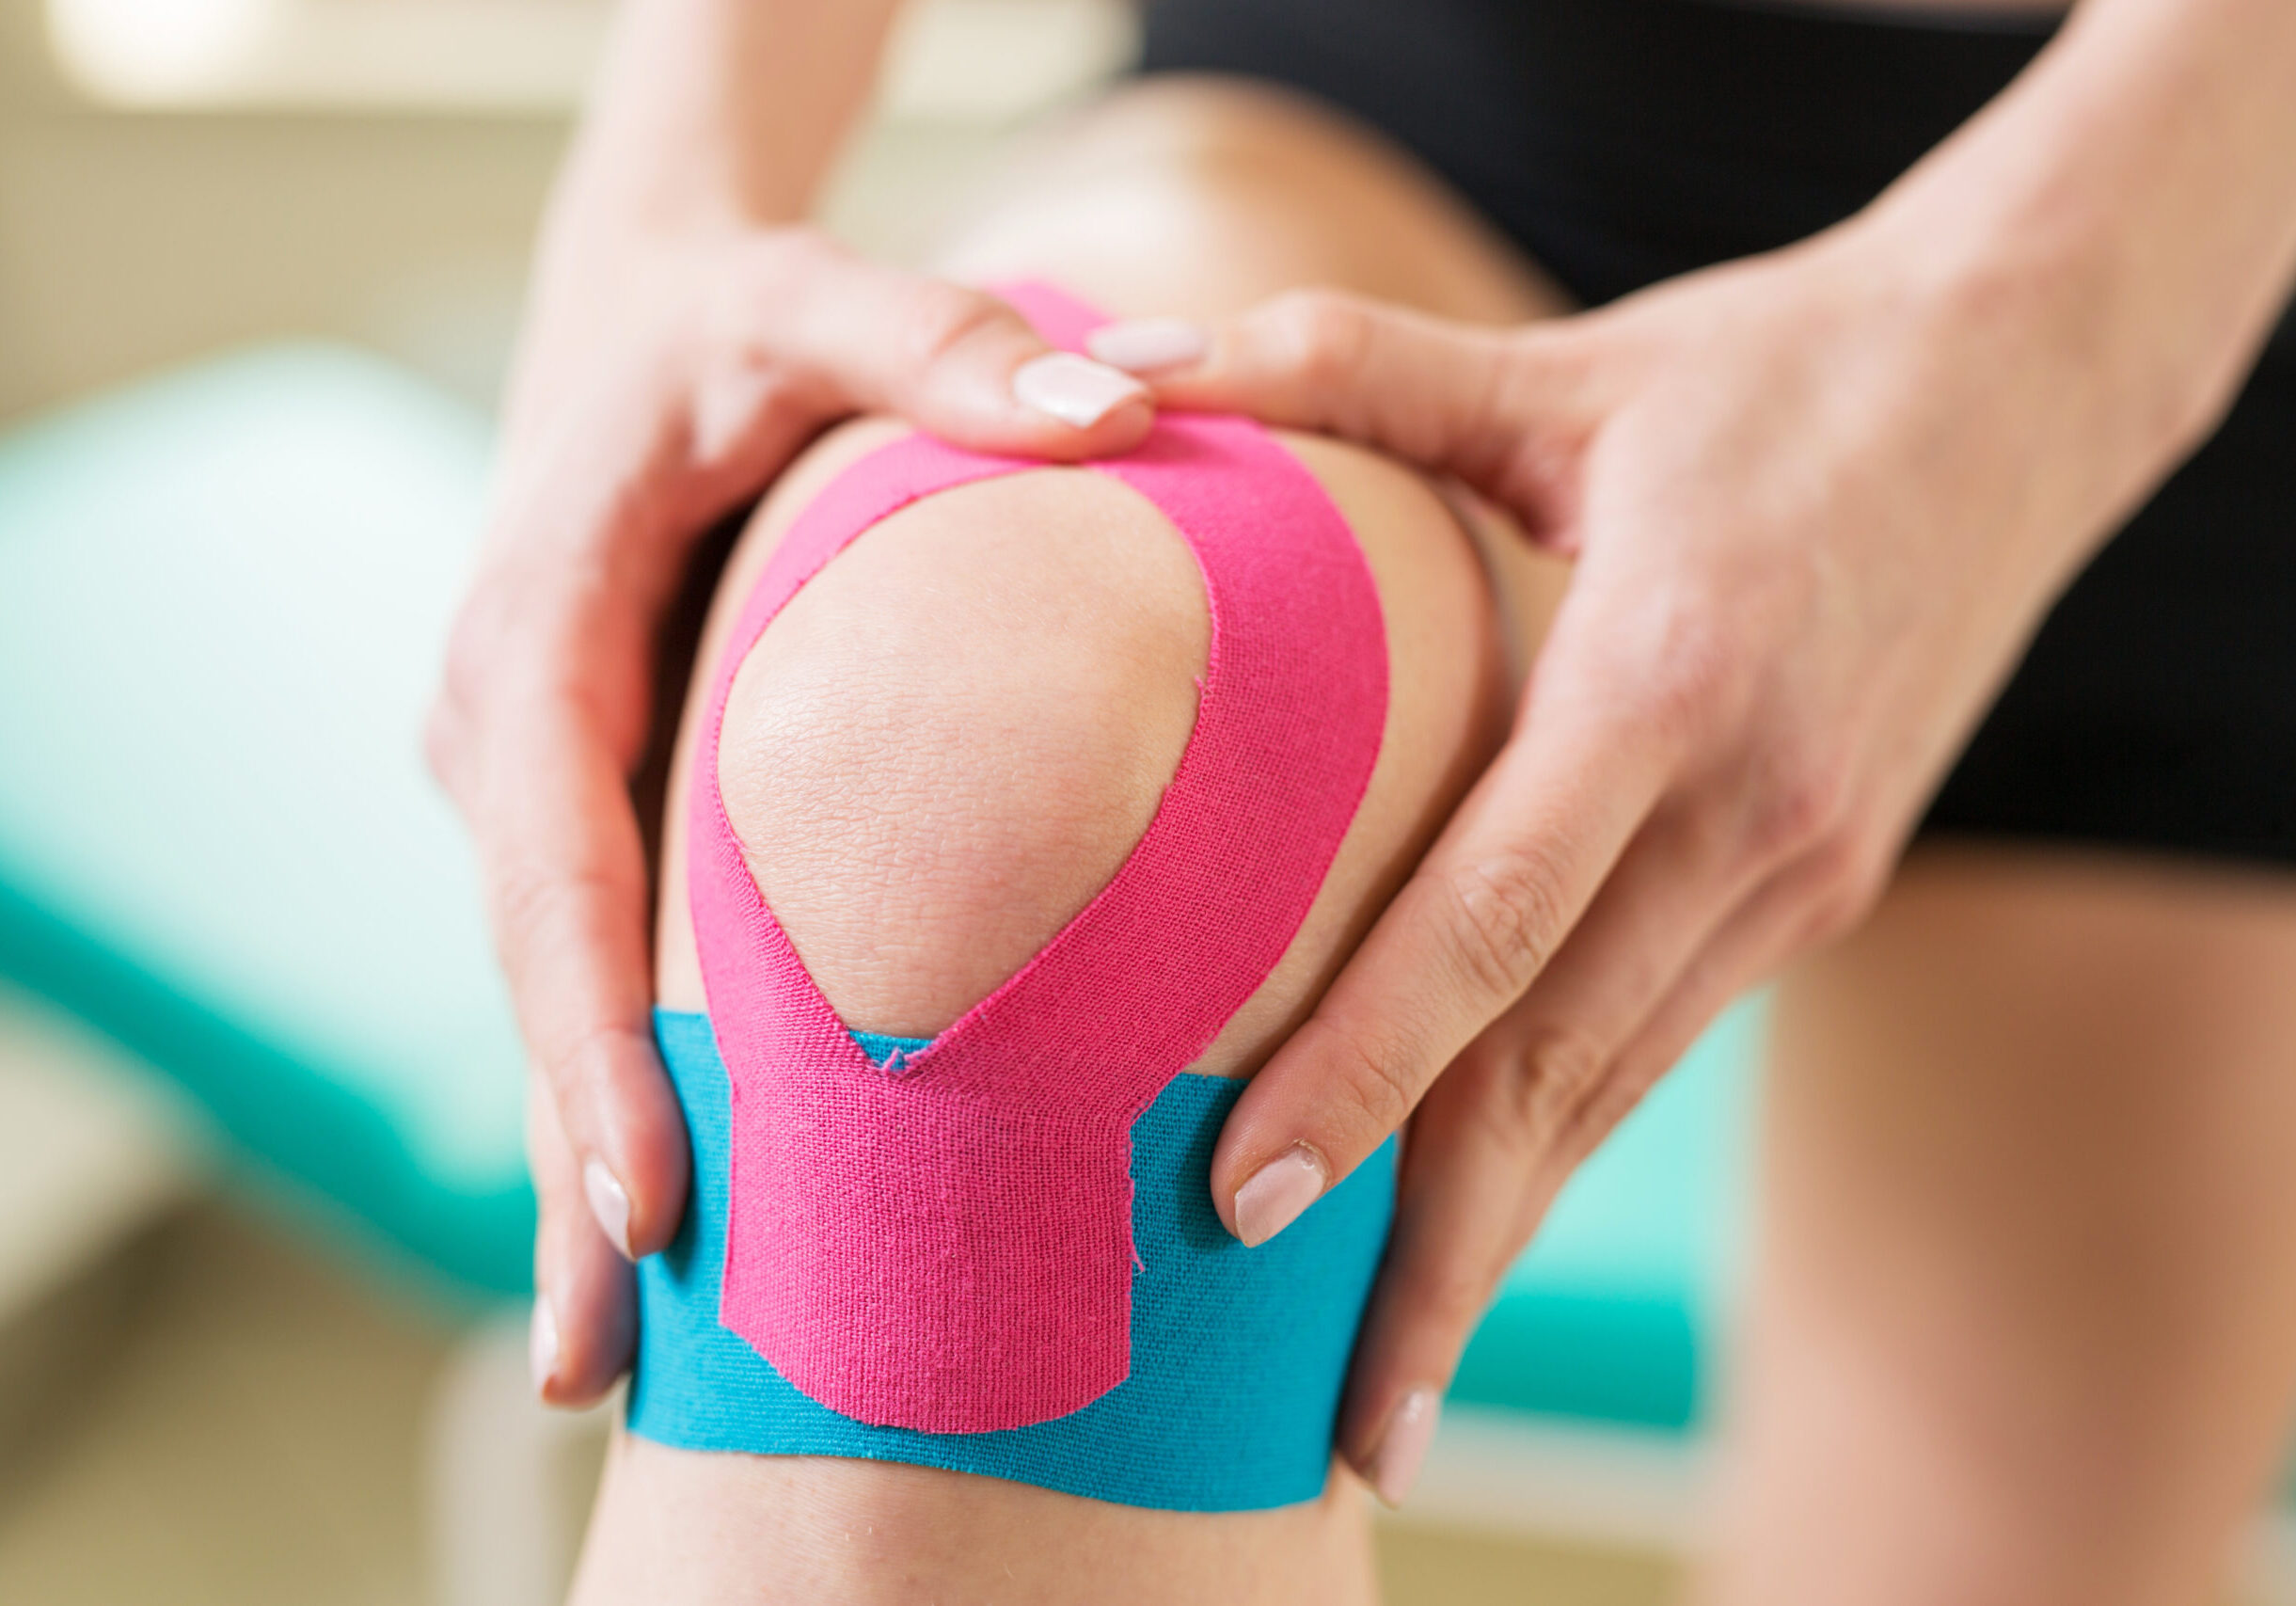 Young,Woman,Massage,Injured,Knee,With,Kinesiotaping